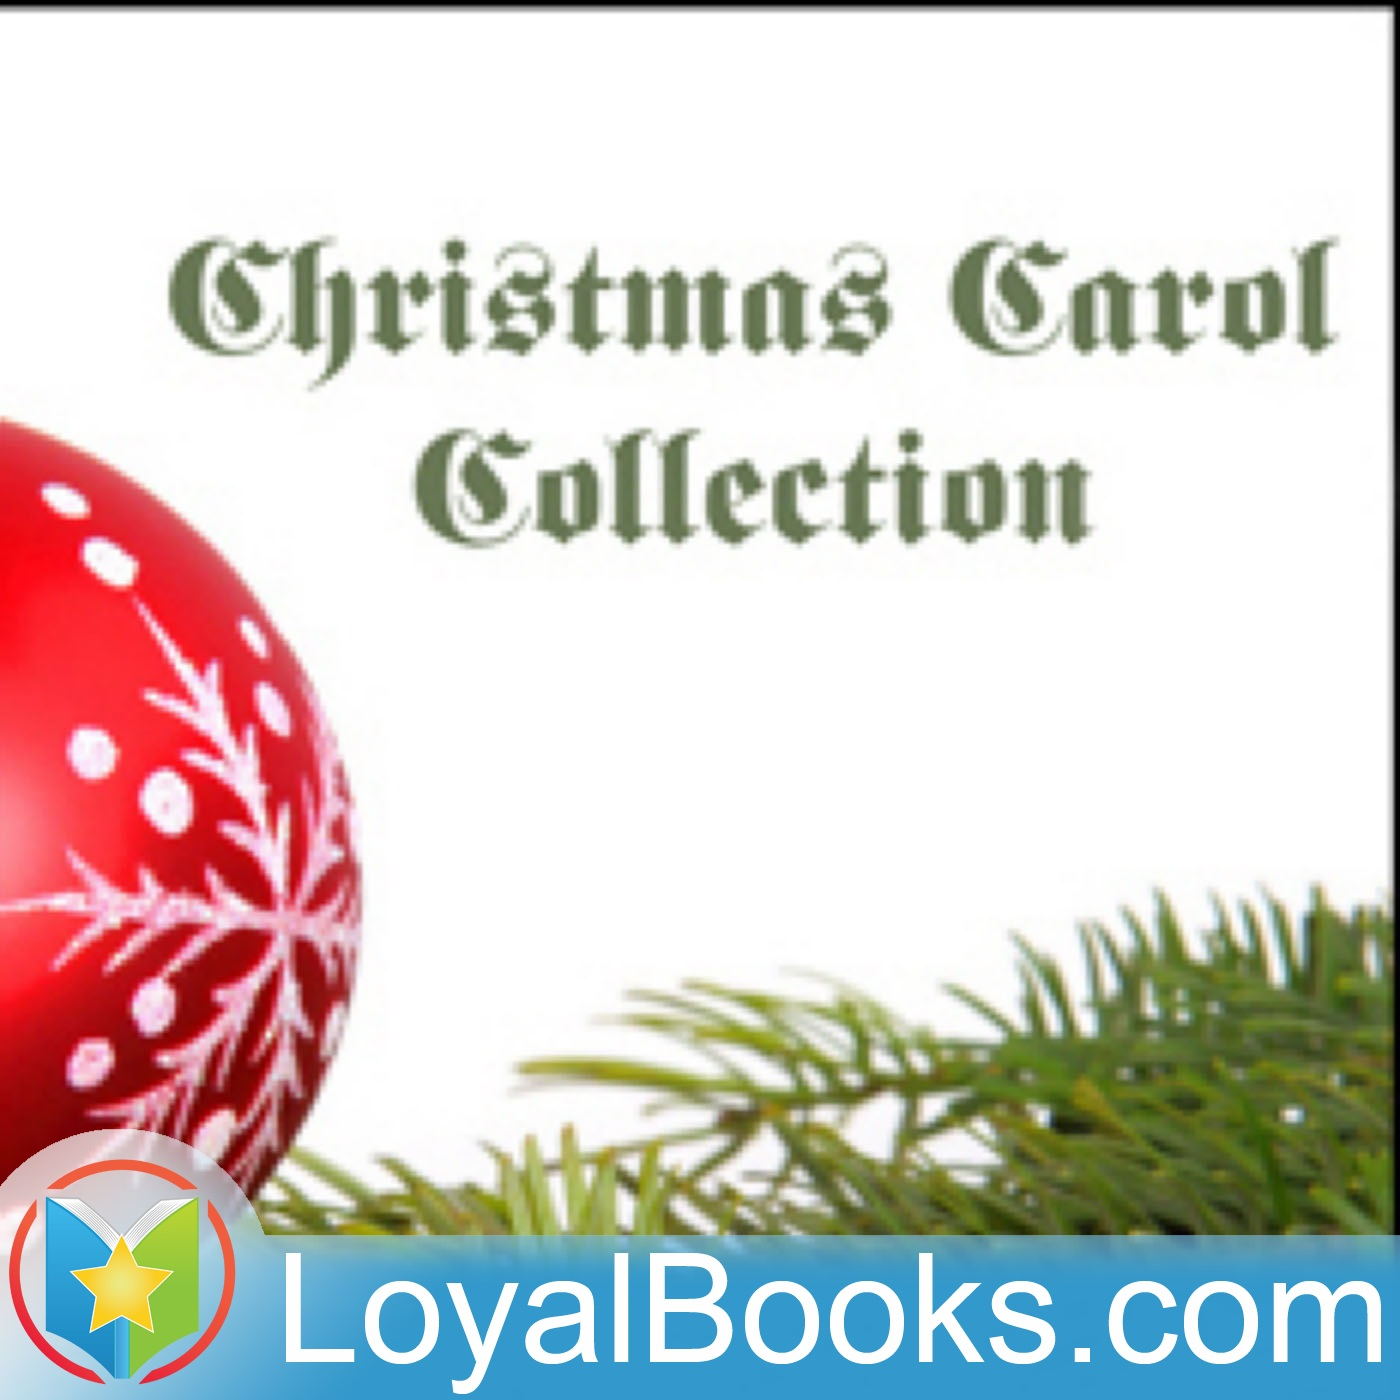 <![CDATA[Christmas Carol Collection by Various]]>